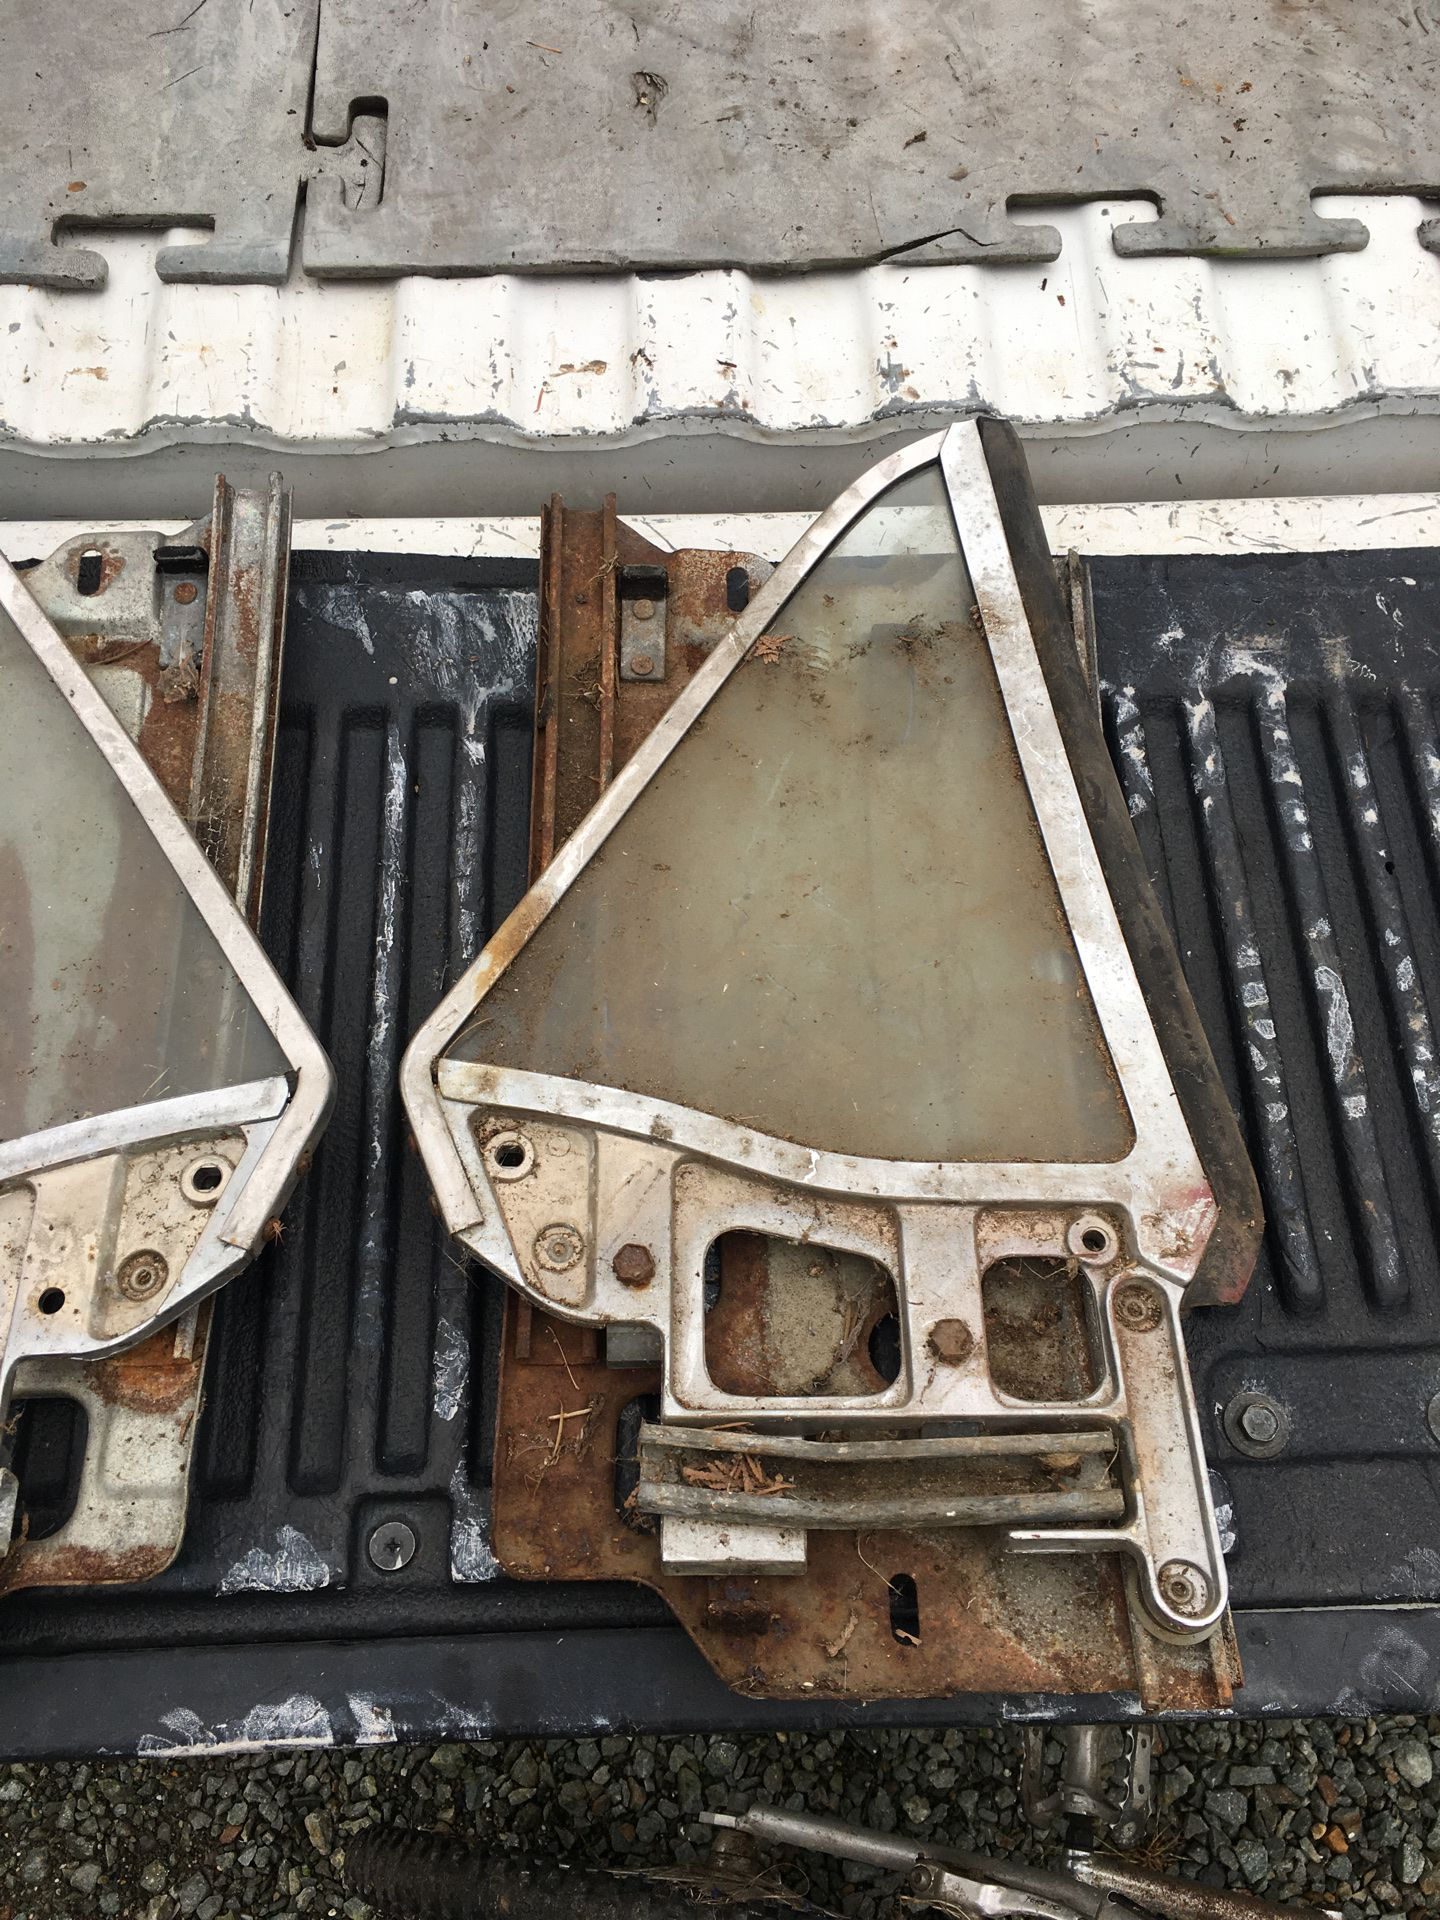 1960s Ford Mustang rear windows